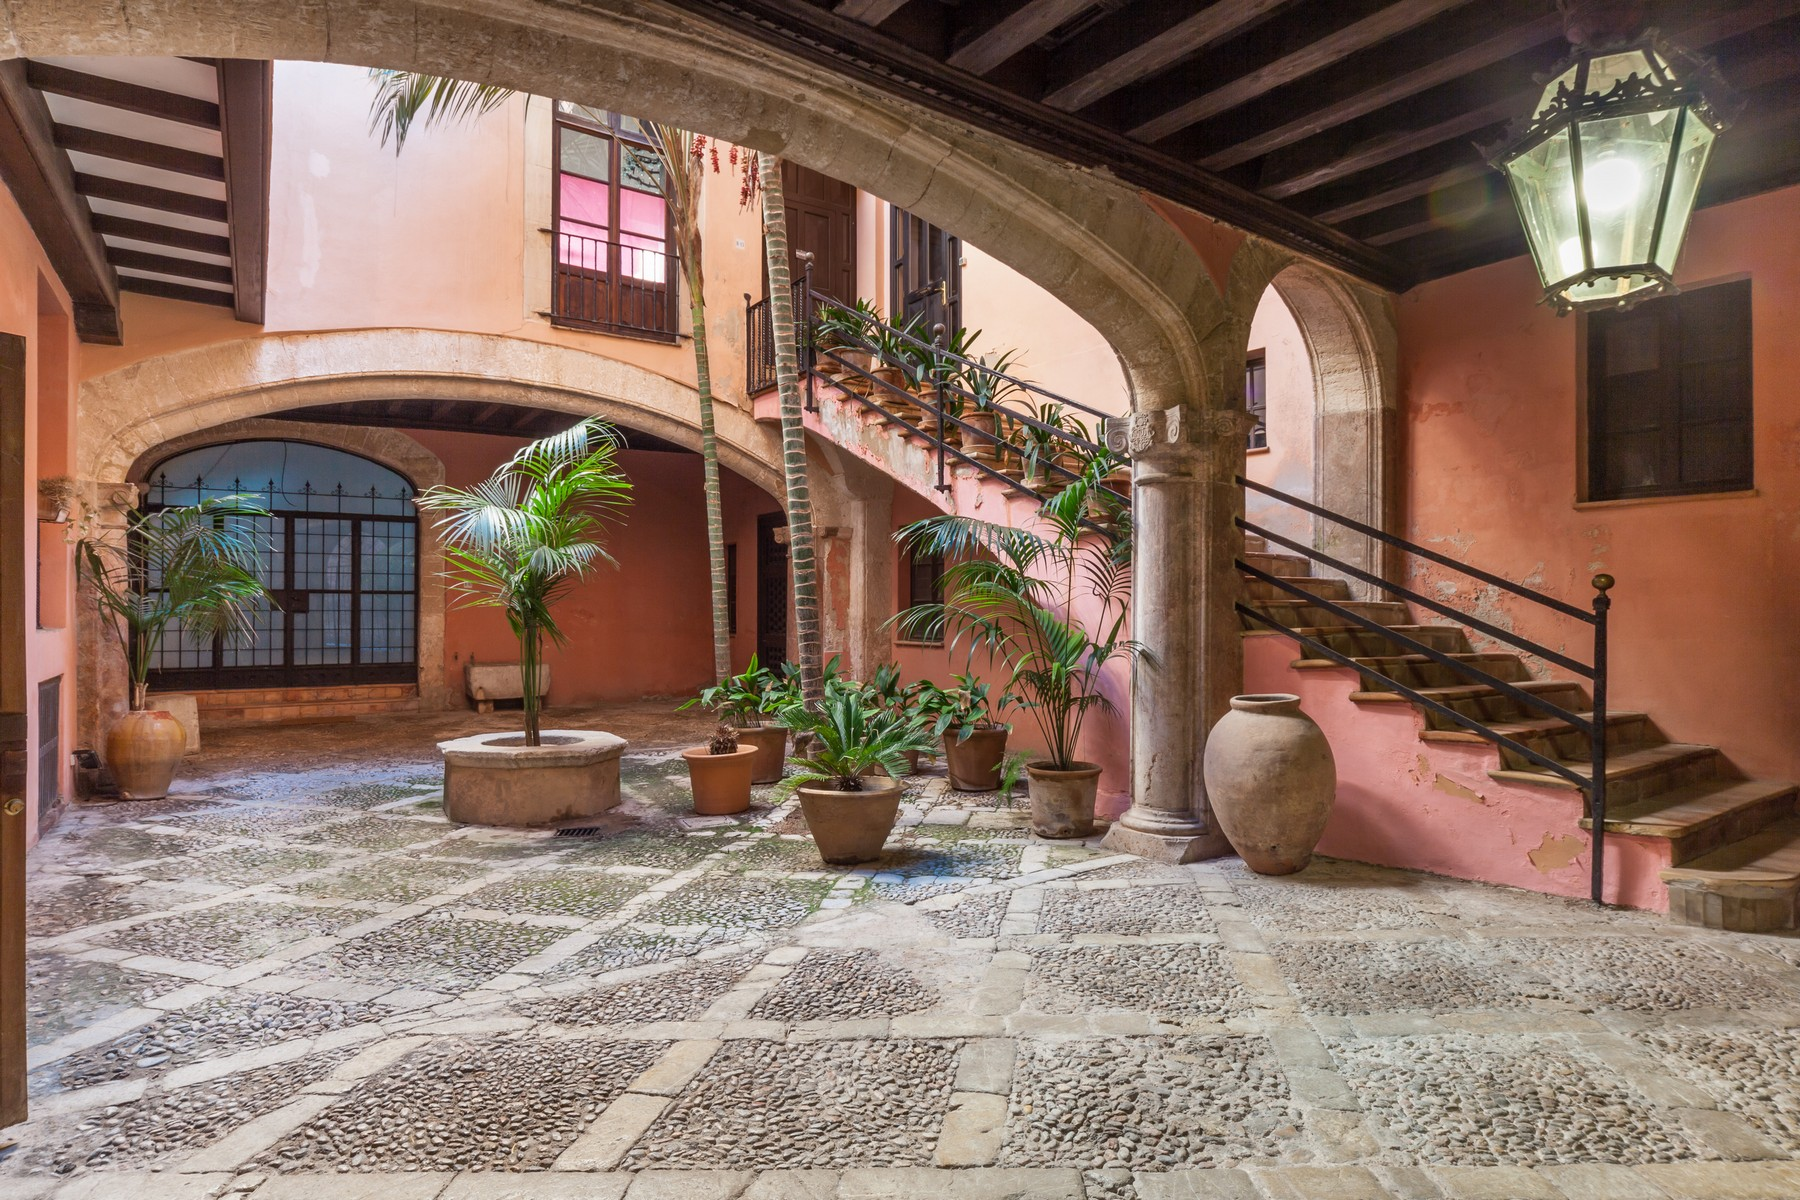 Single Family Home for Sale at Magnificent Apartment in a Manor House in Palma Palma Center, Mallorca, 07001 Spain